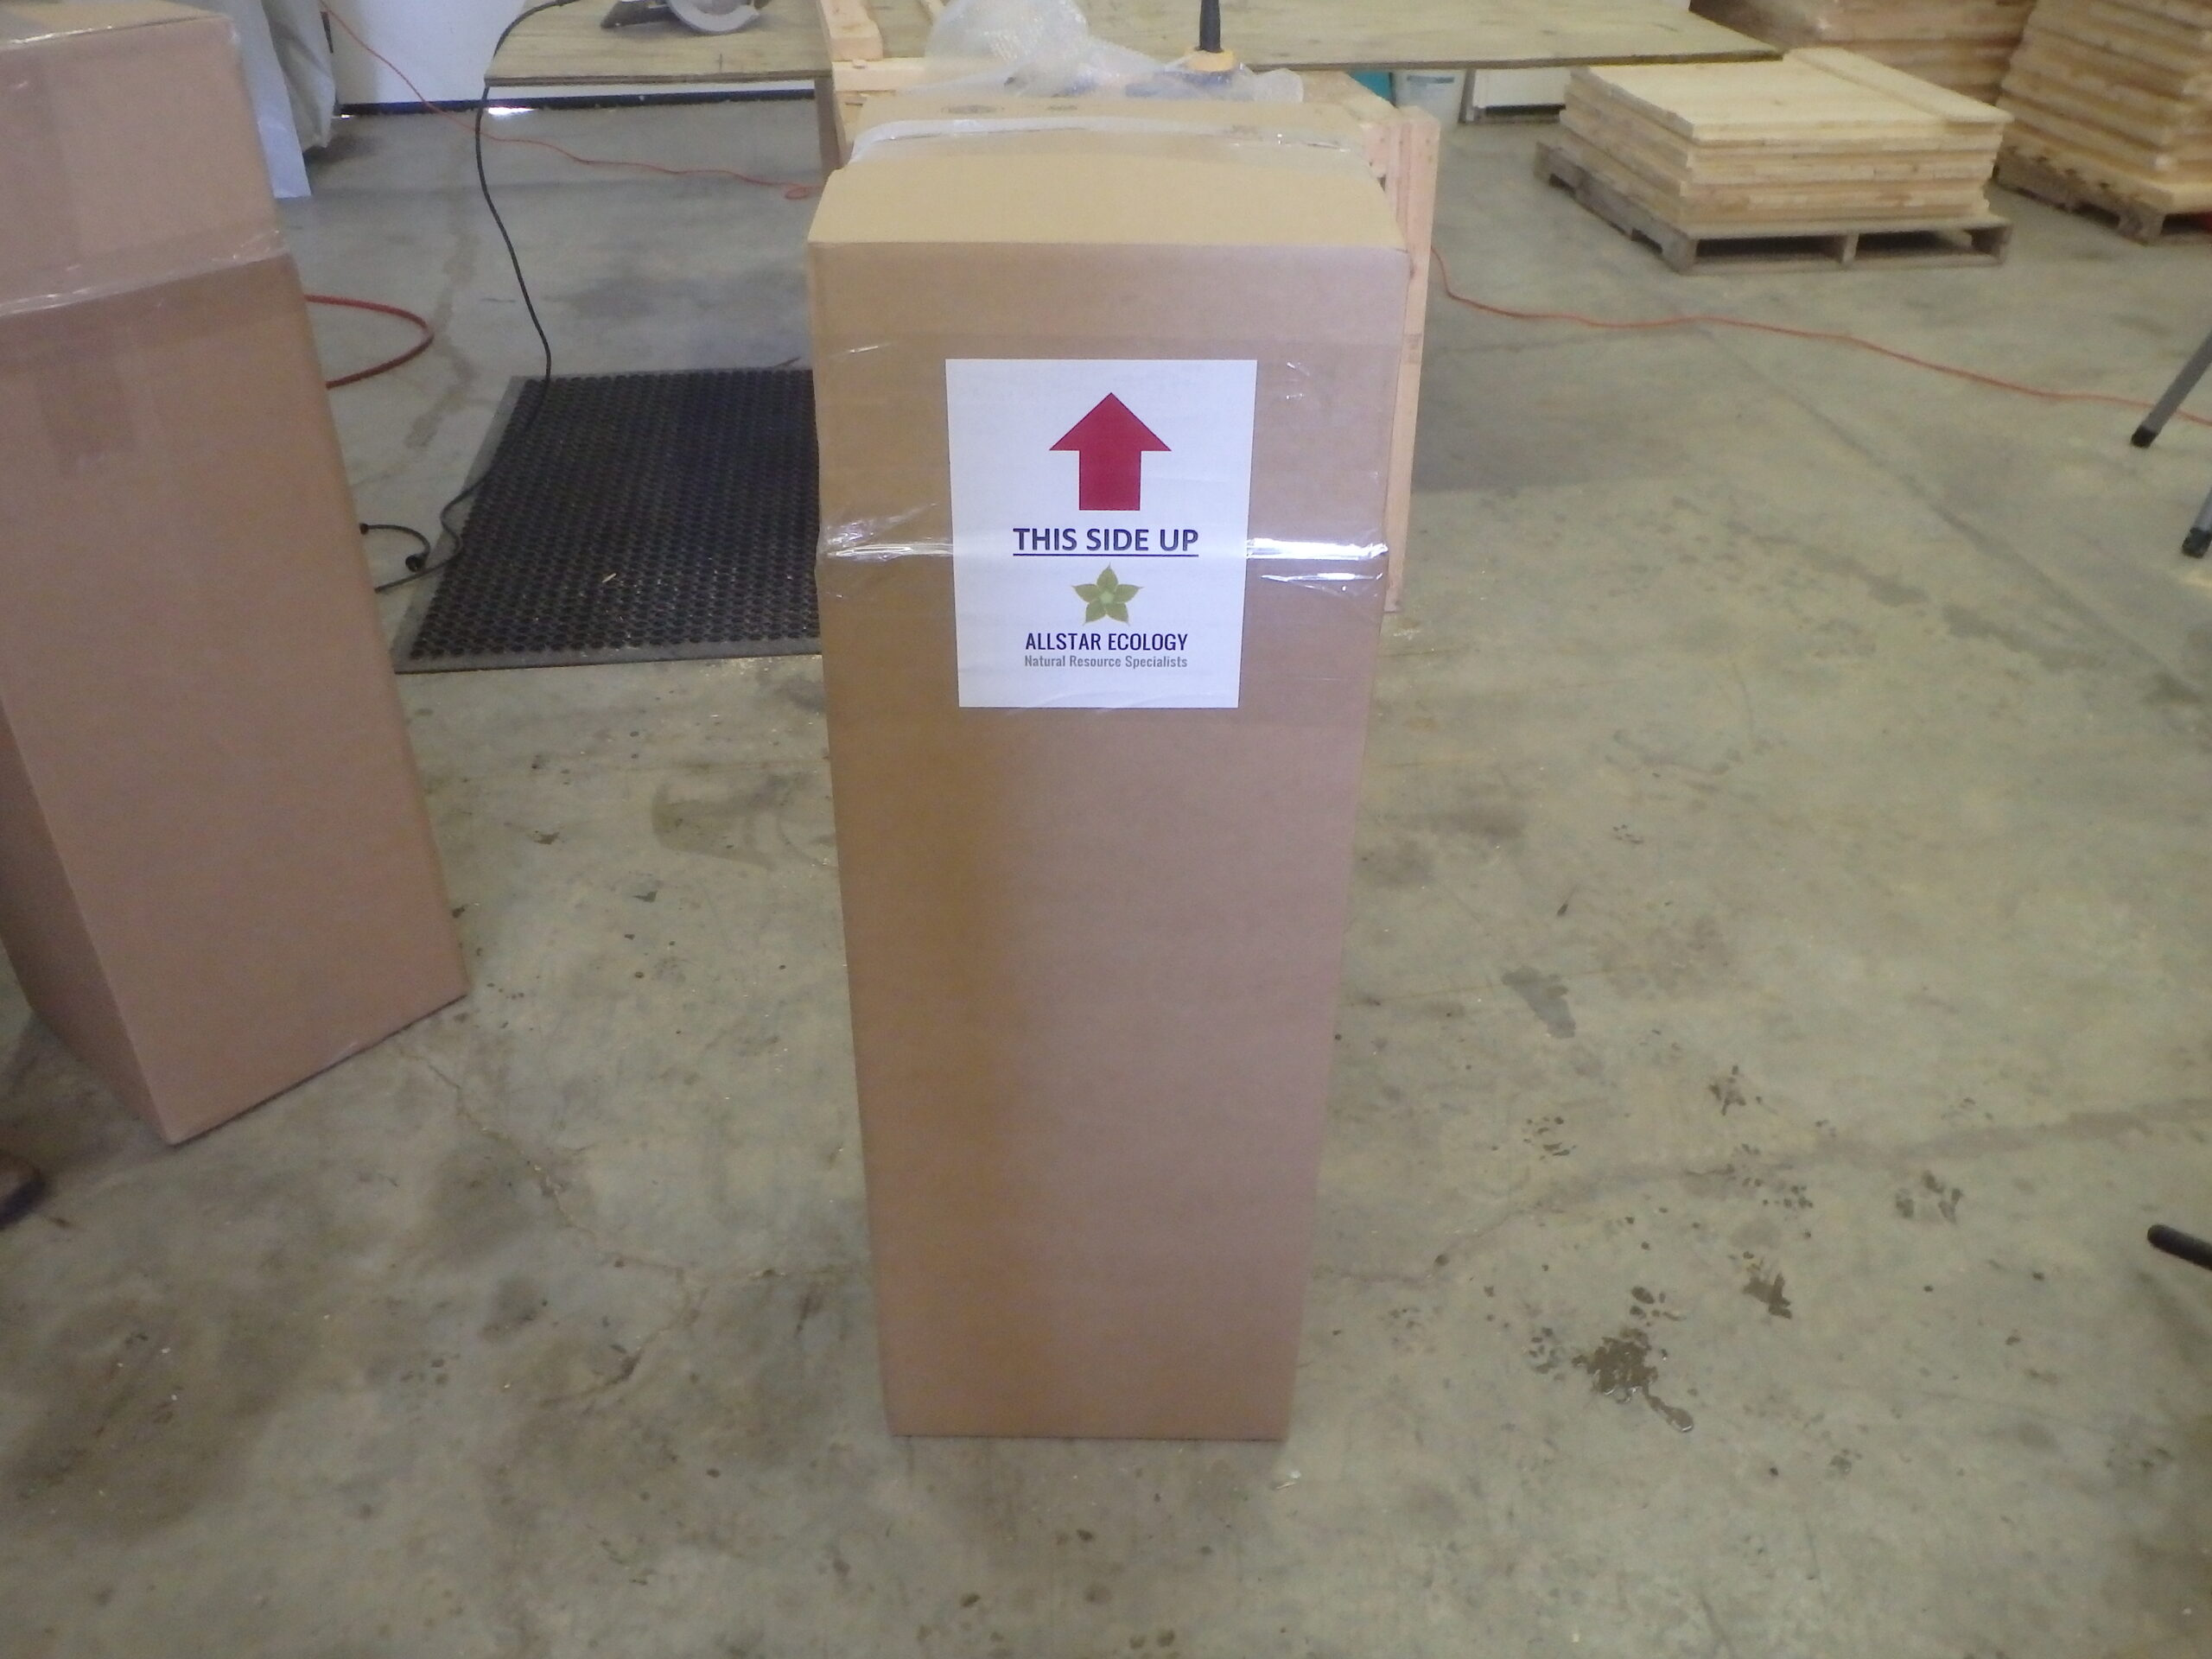 We package and label each bat box to ensure proper handling.